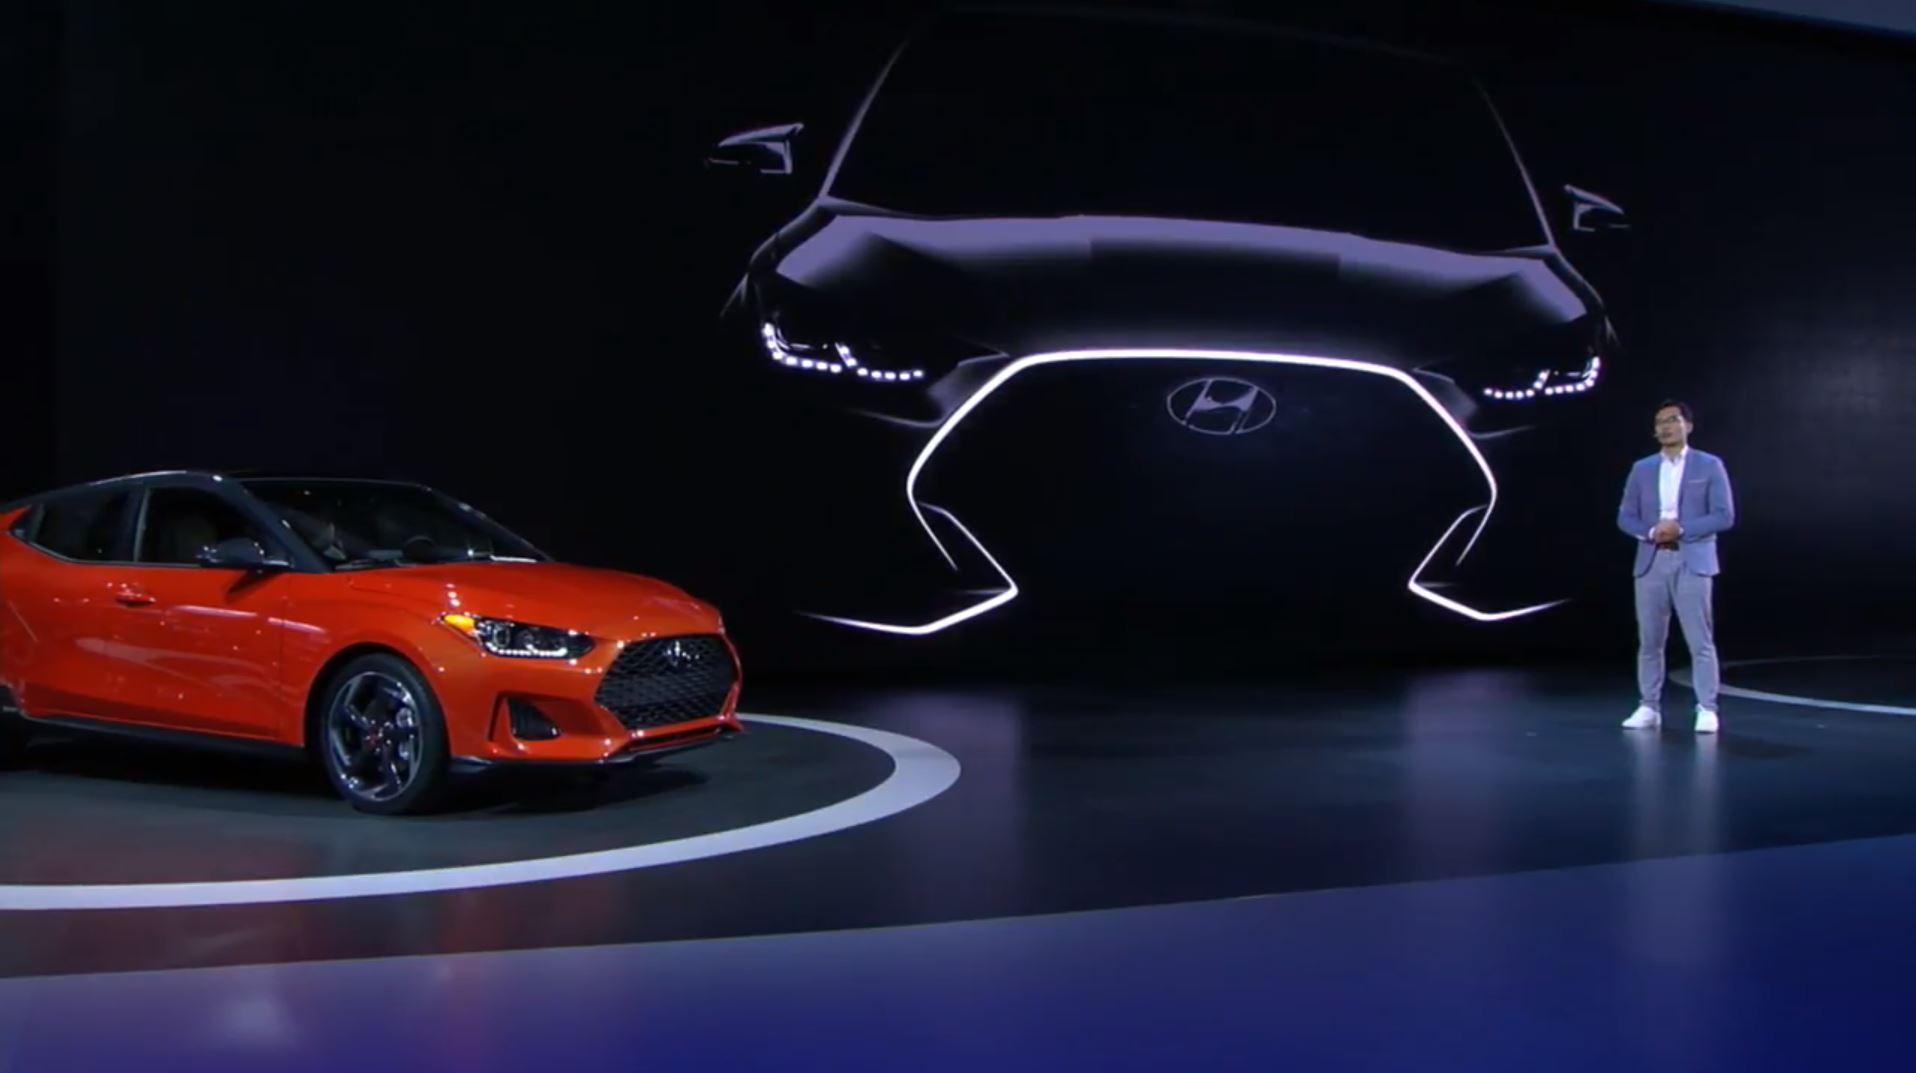 2019 Hyundai Veloster Debut Unveil At 2018 North American International Auto Show Naias Press Conference In Detroit Model Updates Engine Specs 3